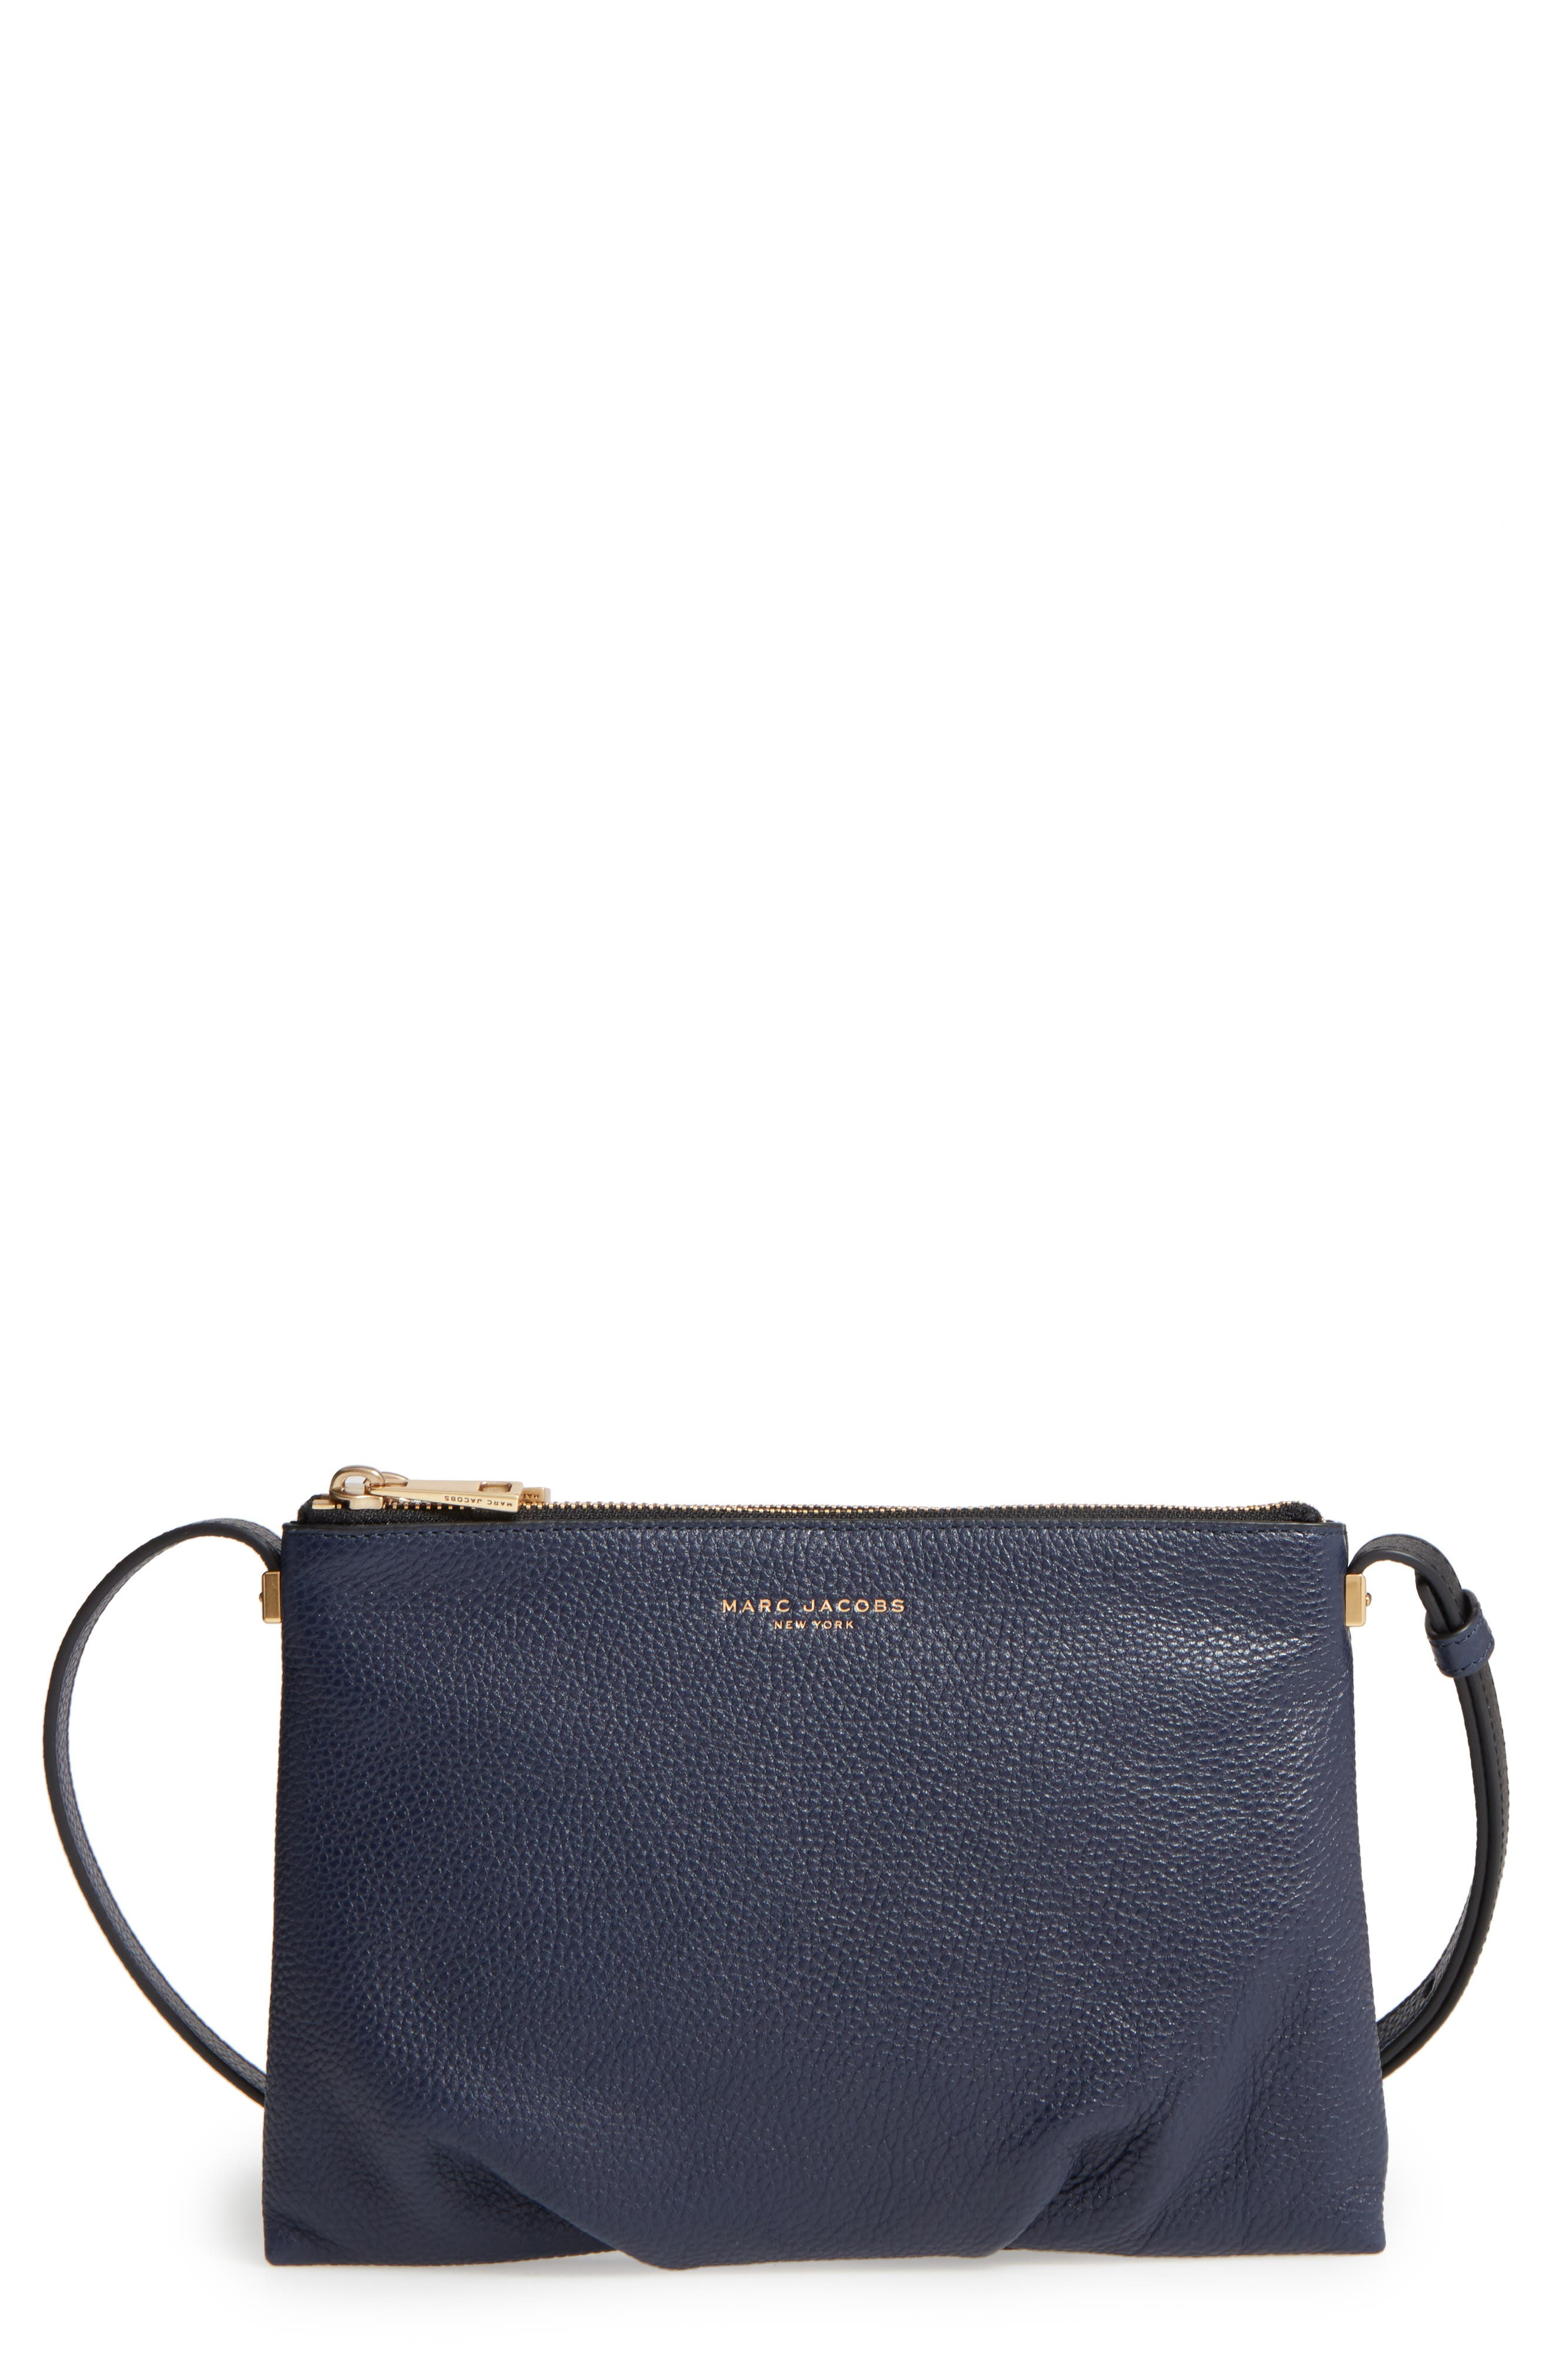 MARC JACOBS The Standard Leather Crossbody Bag